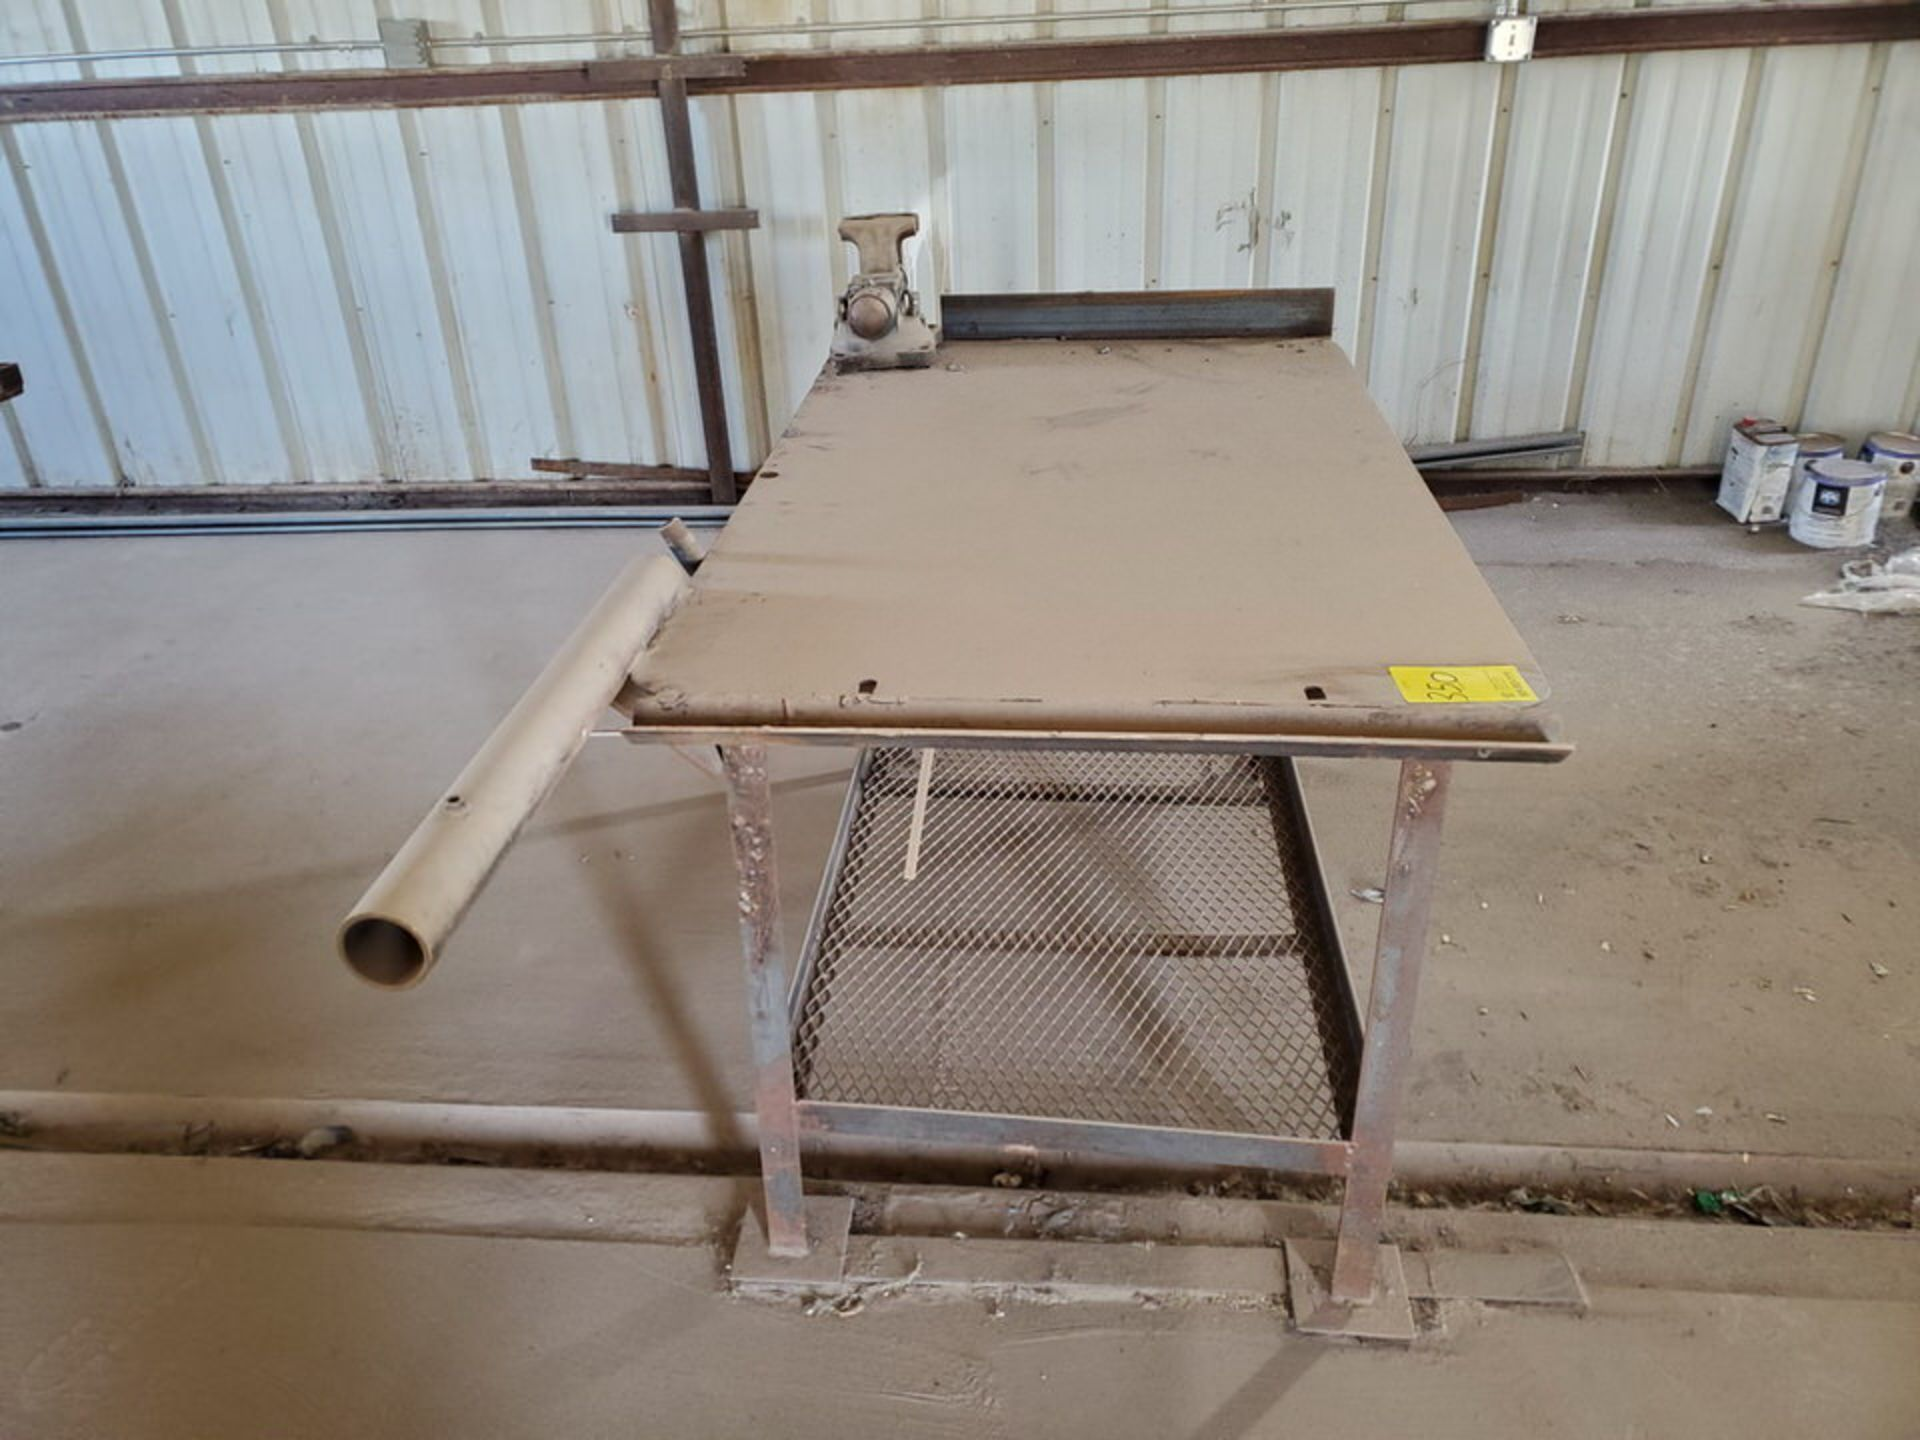 """Welding Tables (1) 37"""" x 65"""" x 36"""", W/ 5-1/2"""" Vise, (1) 72"""" x 64"""" x 38"""" - Image 4 of 8"""